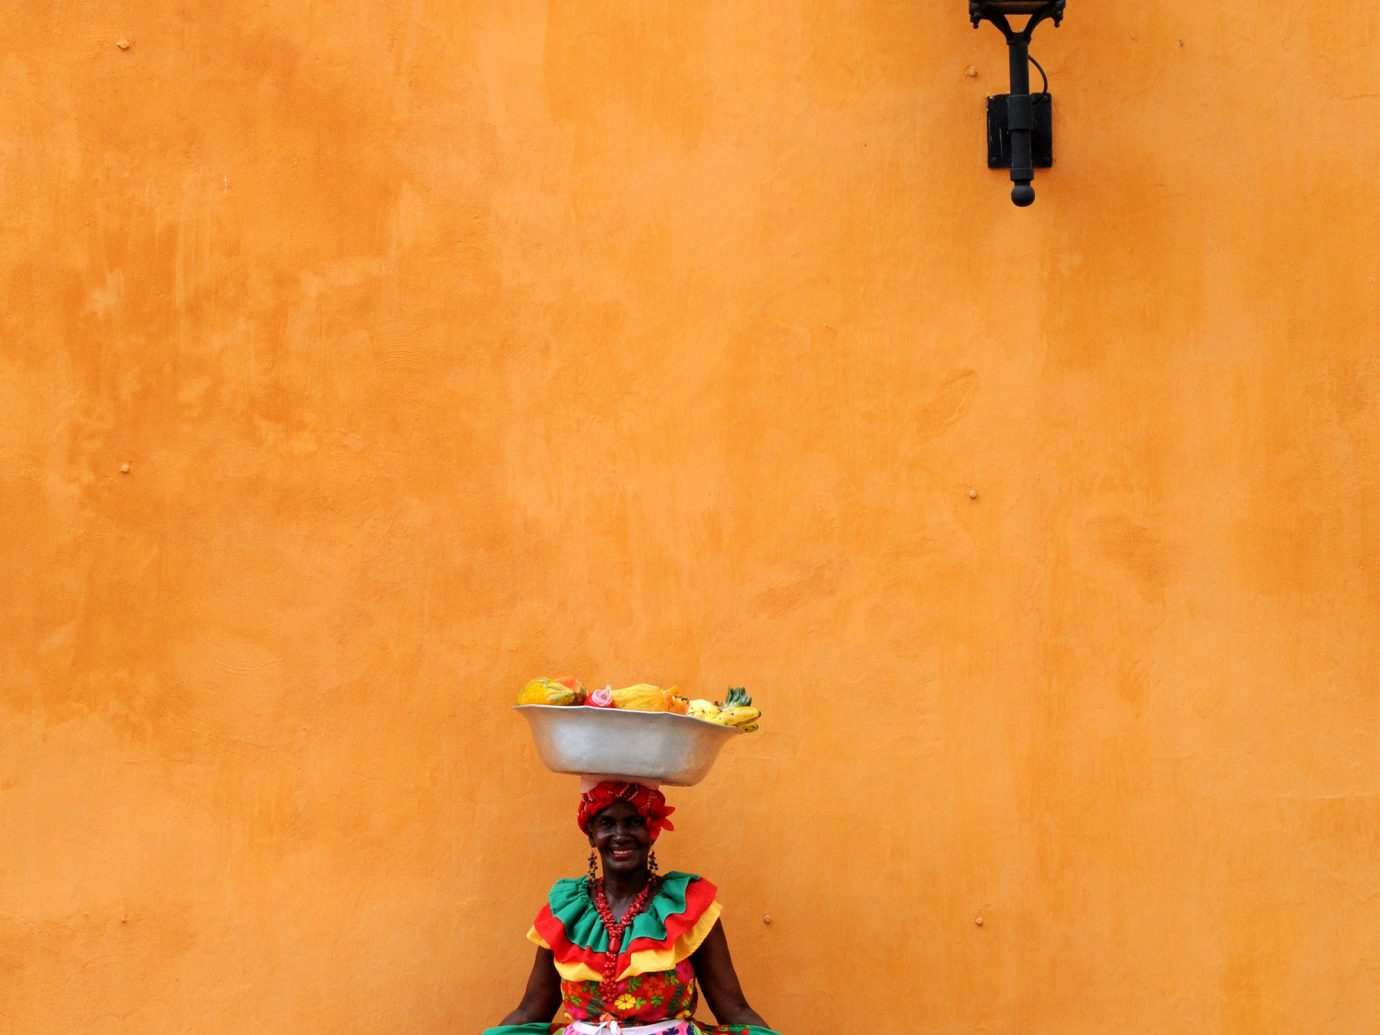 a local in Cartagena standing in front of a yellow wall in a beautiful colorful dress